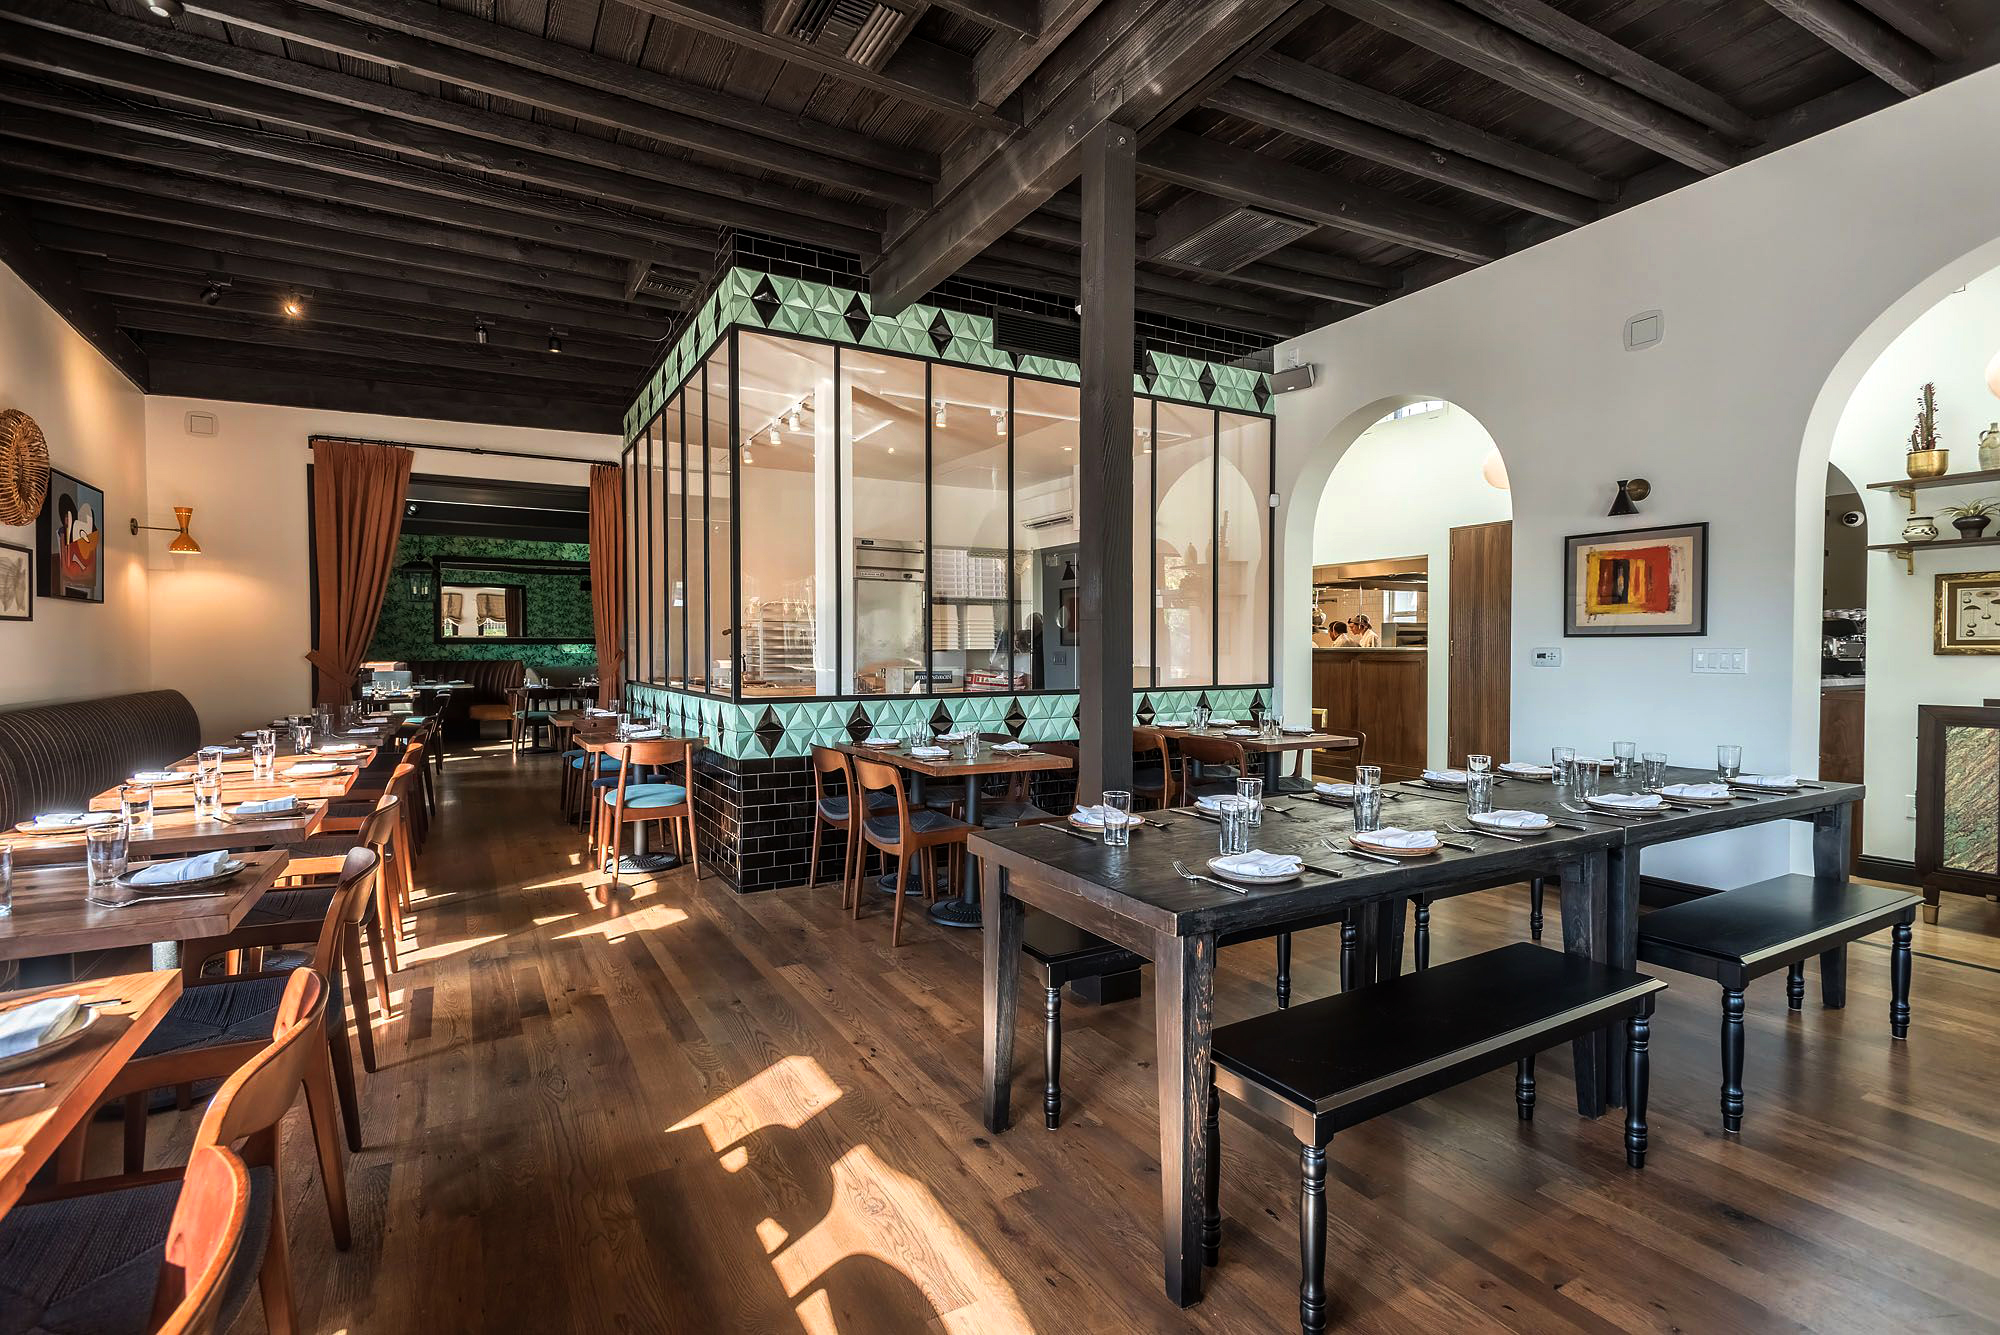 S.E.A.-Studio-Environmental-Architecture-David-Hertz-FAIA-Abbot-Kinney-Restaurant-Venice-Beach-adaptive-reuse-sustainable-regenerative-restorative-design-pedestrian-walkable-urbanism-local-community-context-modern-destination-cuisine-remodel-4.jpg